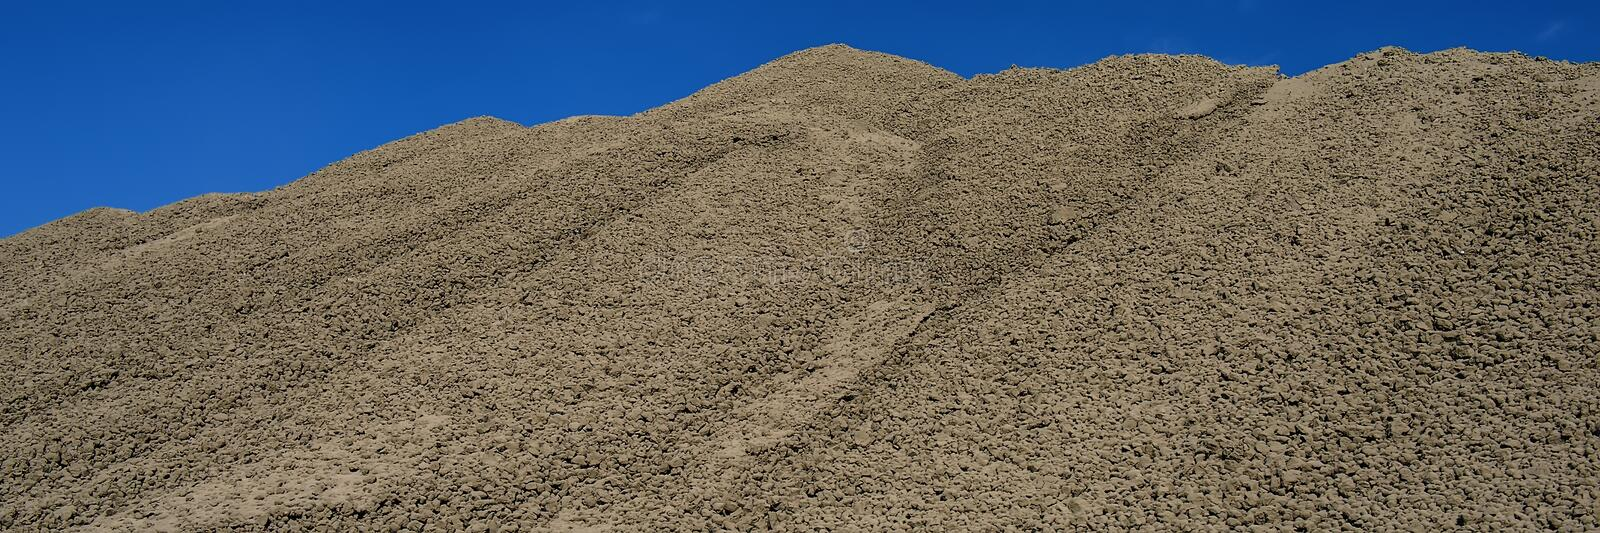 Clinker surface in a raw material warehouse and blue sky, cement production. Web banner for your design stock photo